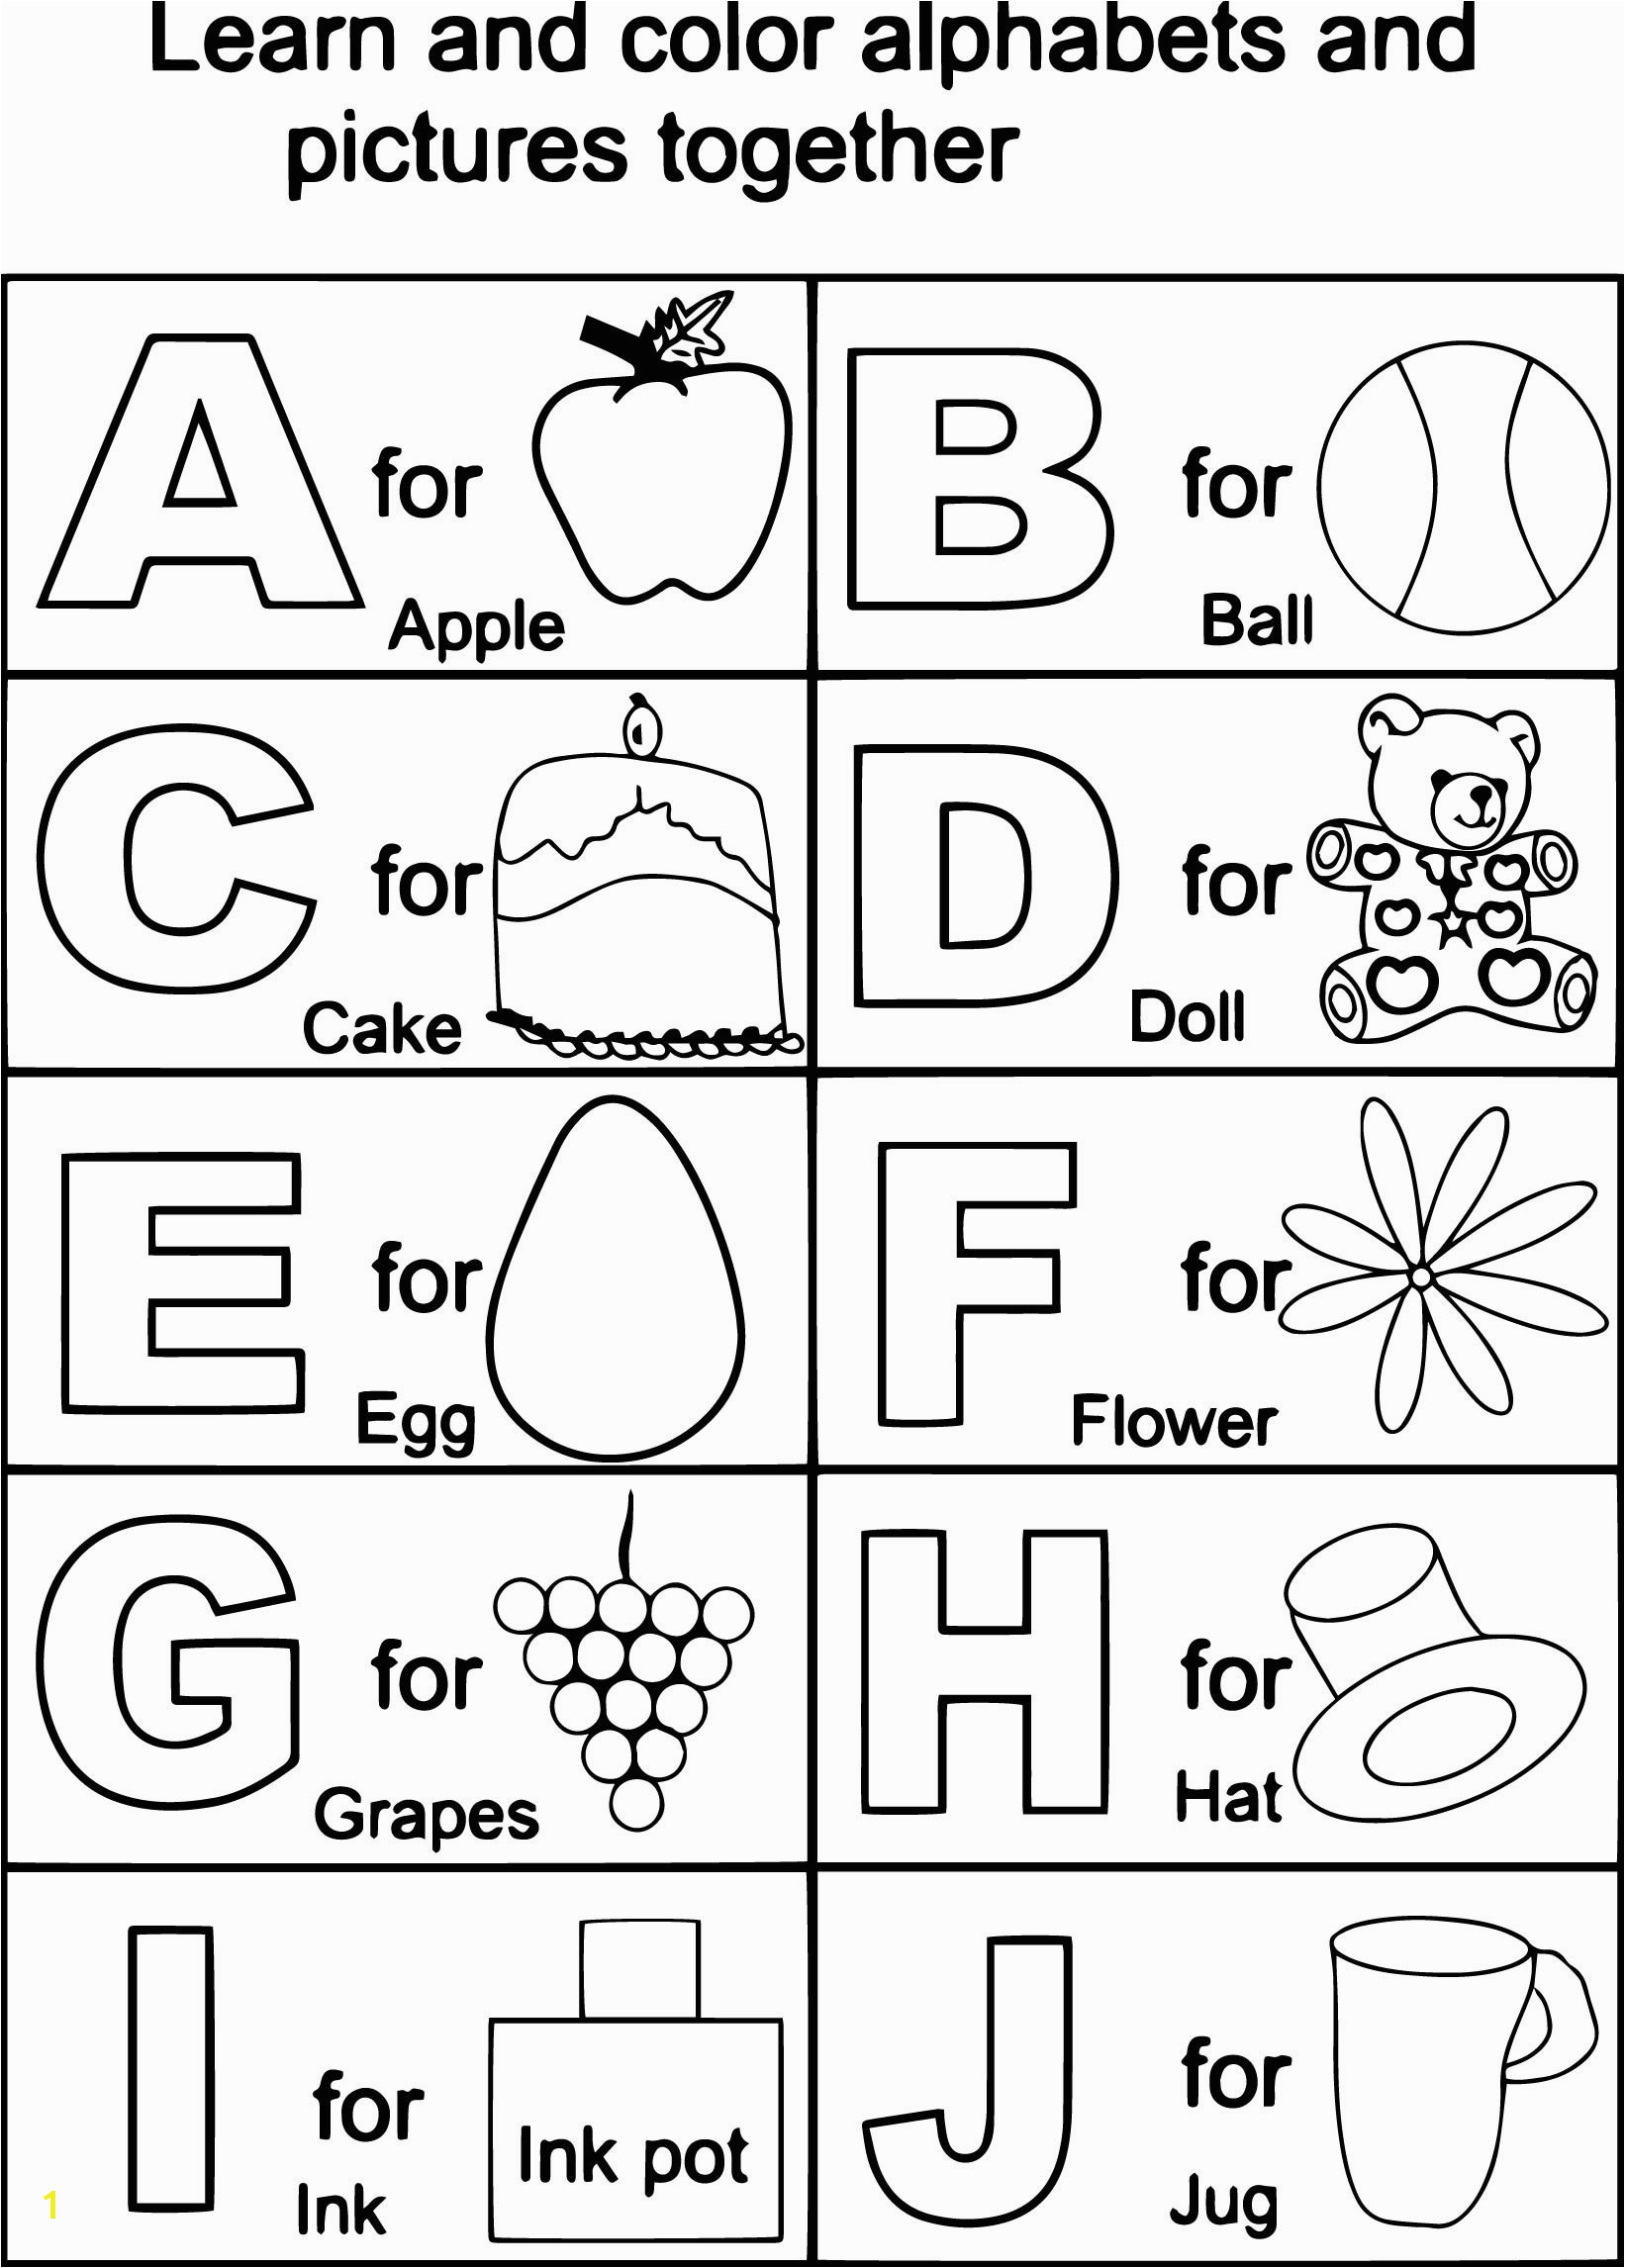 Awesome intricate alphabet coloring pages Collection 8 a Alphabet Coloring Pages New Free Printable